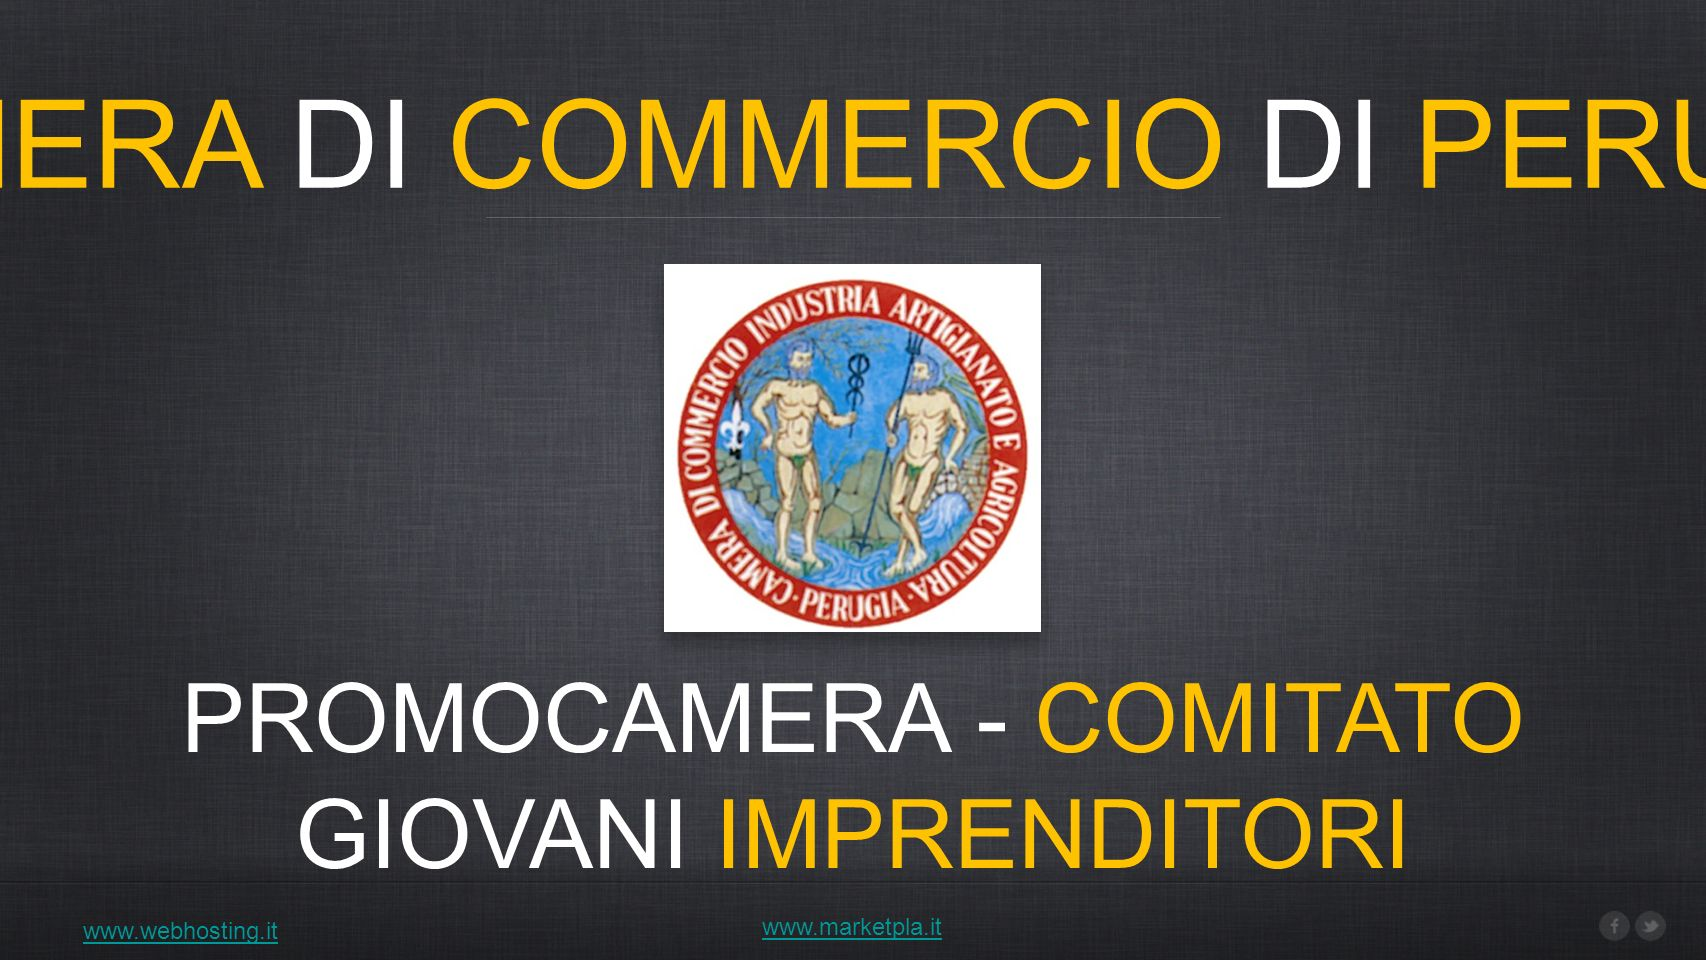 CAMERA DI COMMERCIO DI PERUGIA PROMOCAMERA - COMITATO GIOVANI IMPRENDITORI www.webhosting.it www.marketpla.it